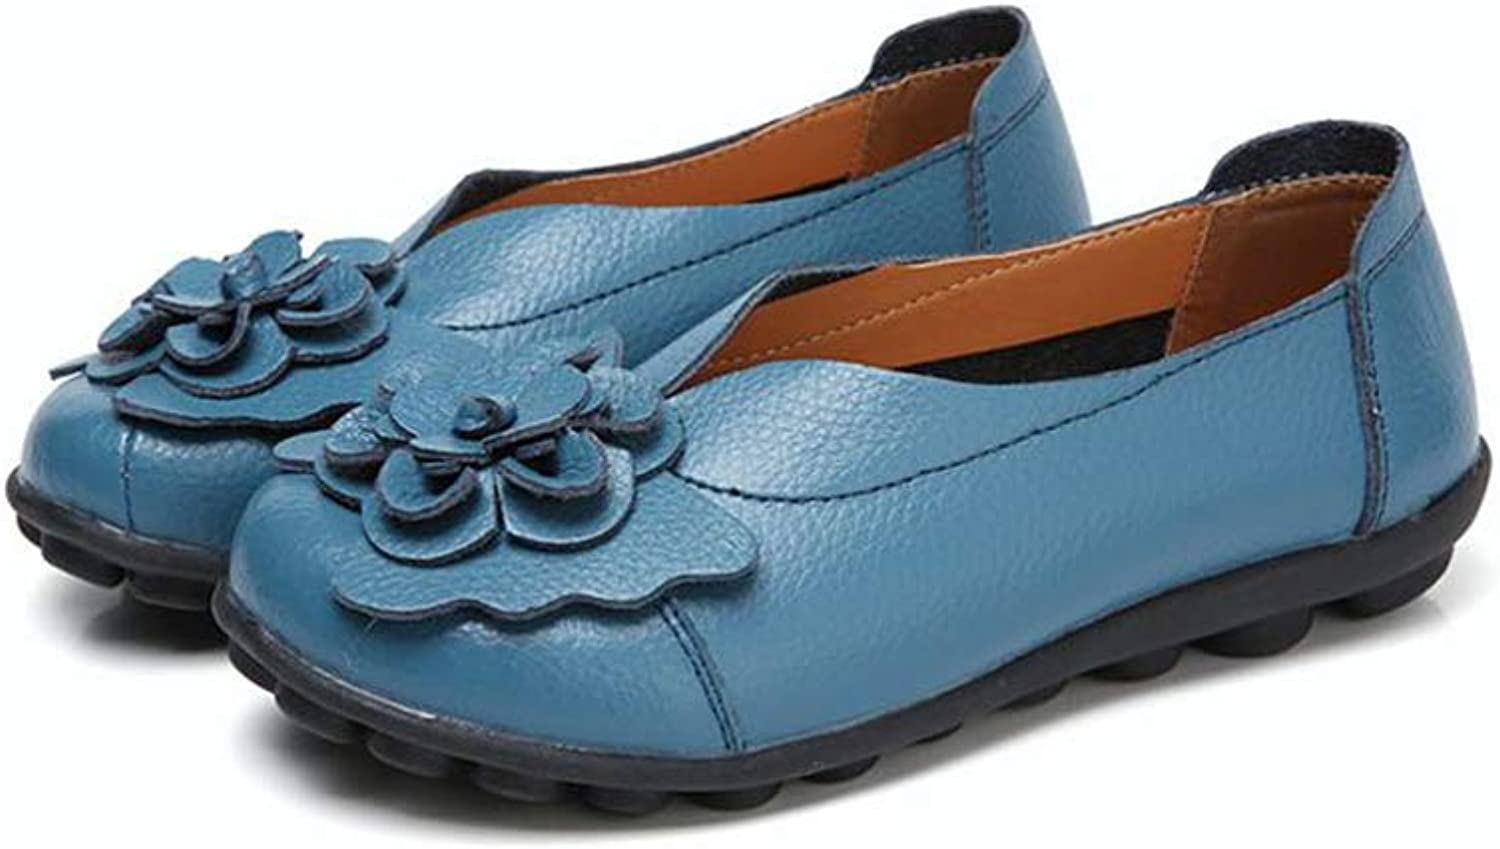 Casual Moccasin shoes Women Flat Loafer Girls Slippers Slip-on Driving